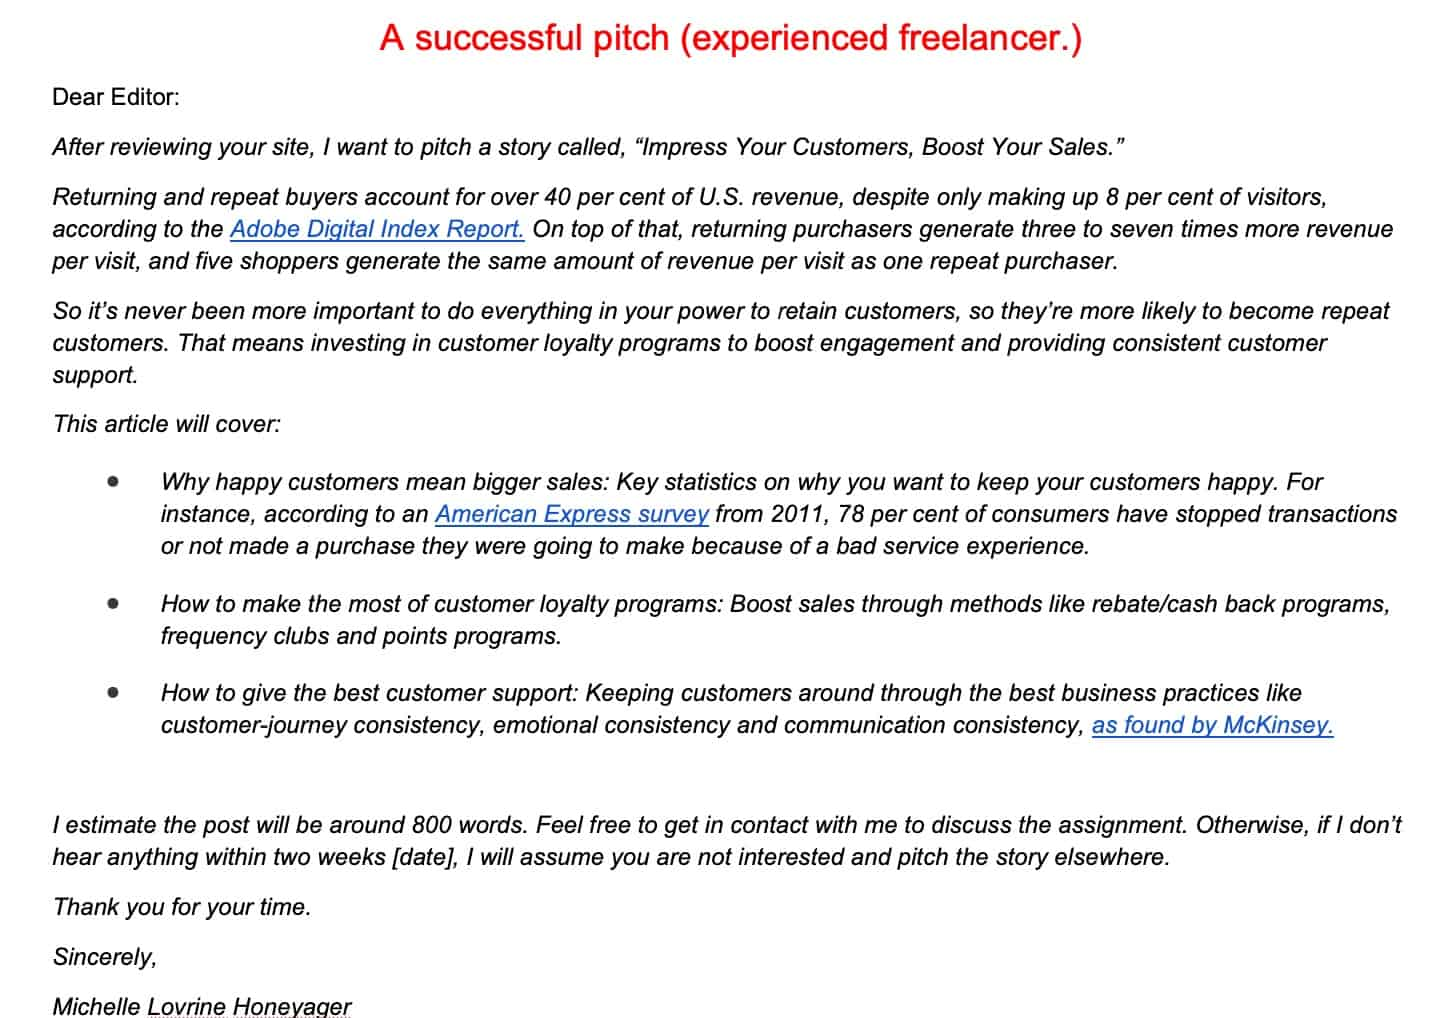 Successful pitch from an experienced freelancer